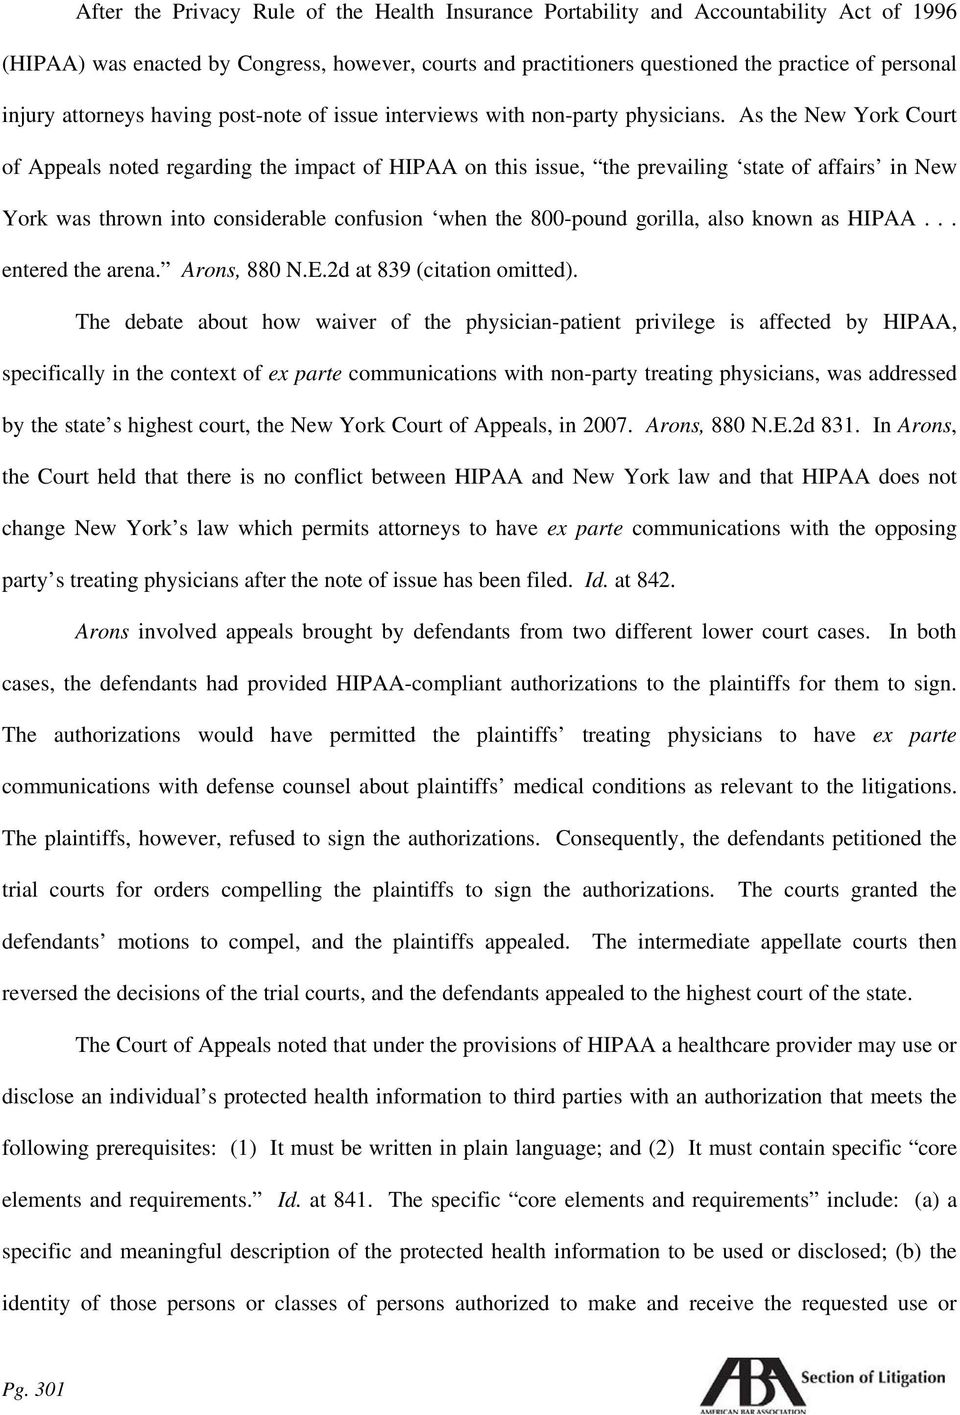 As the New York Court of Appeals noted regarding the impact of HIPAA on this issue, the prevailing state of affairs in New York was thrown into considerable confusion when the 800-pound gorilla, also